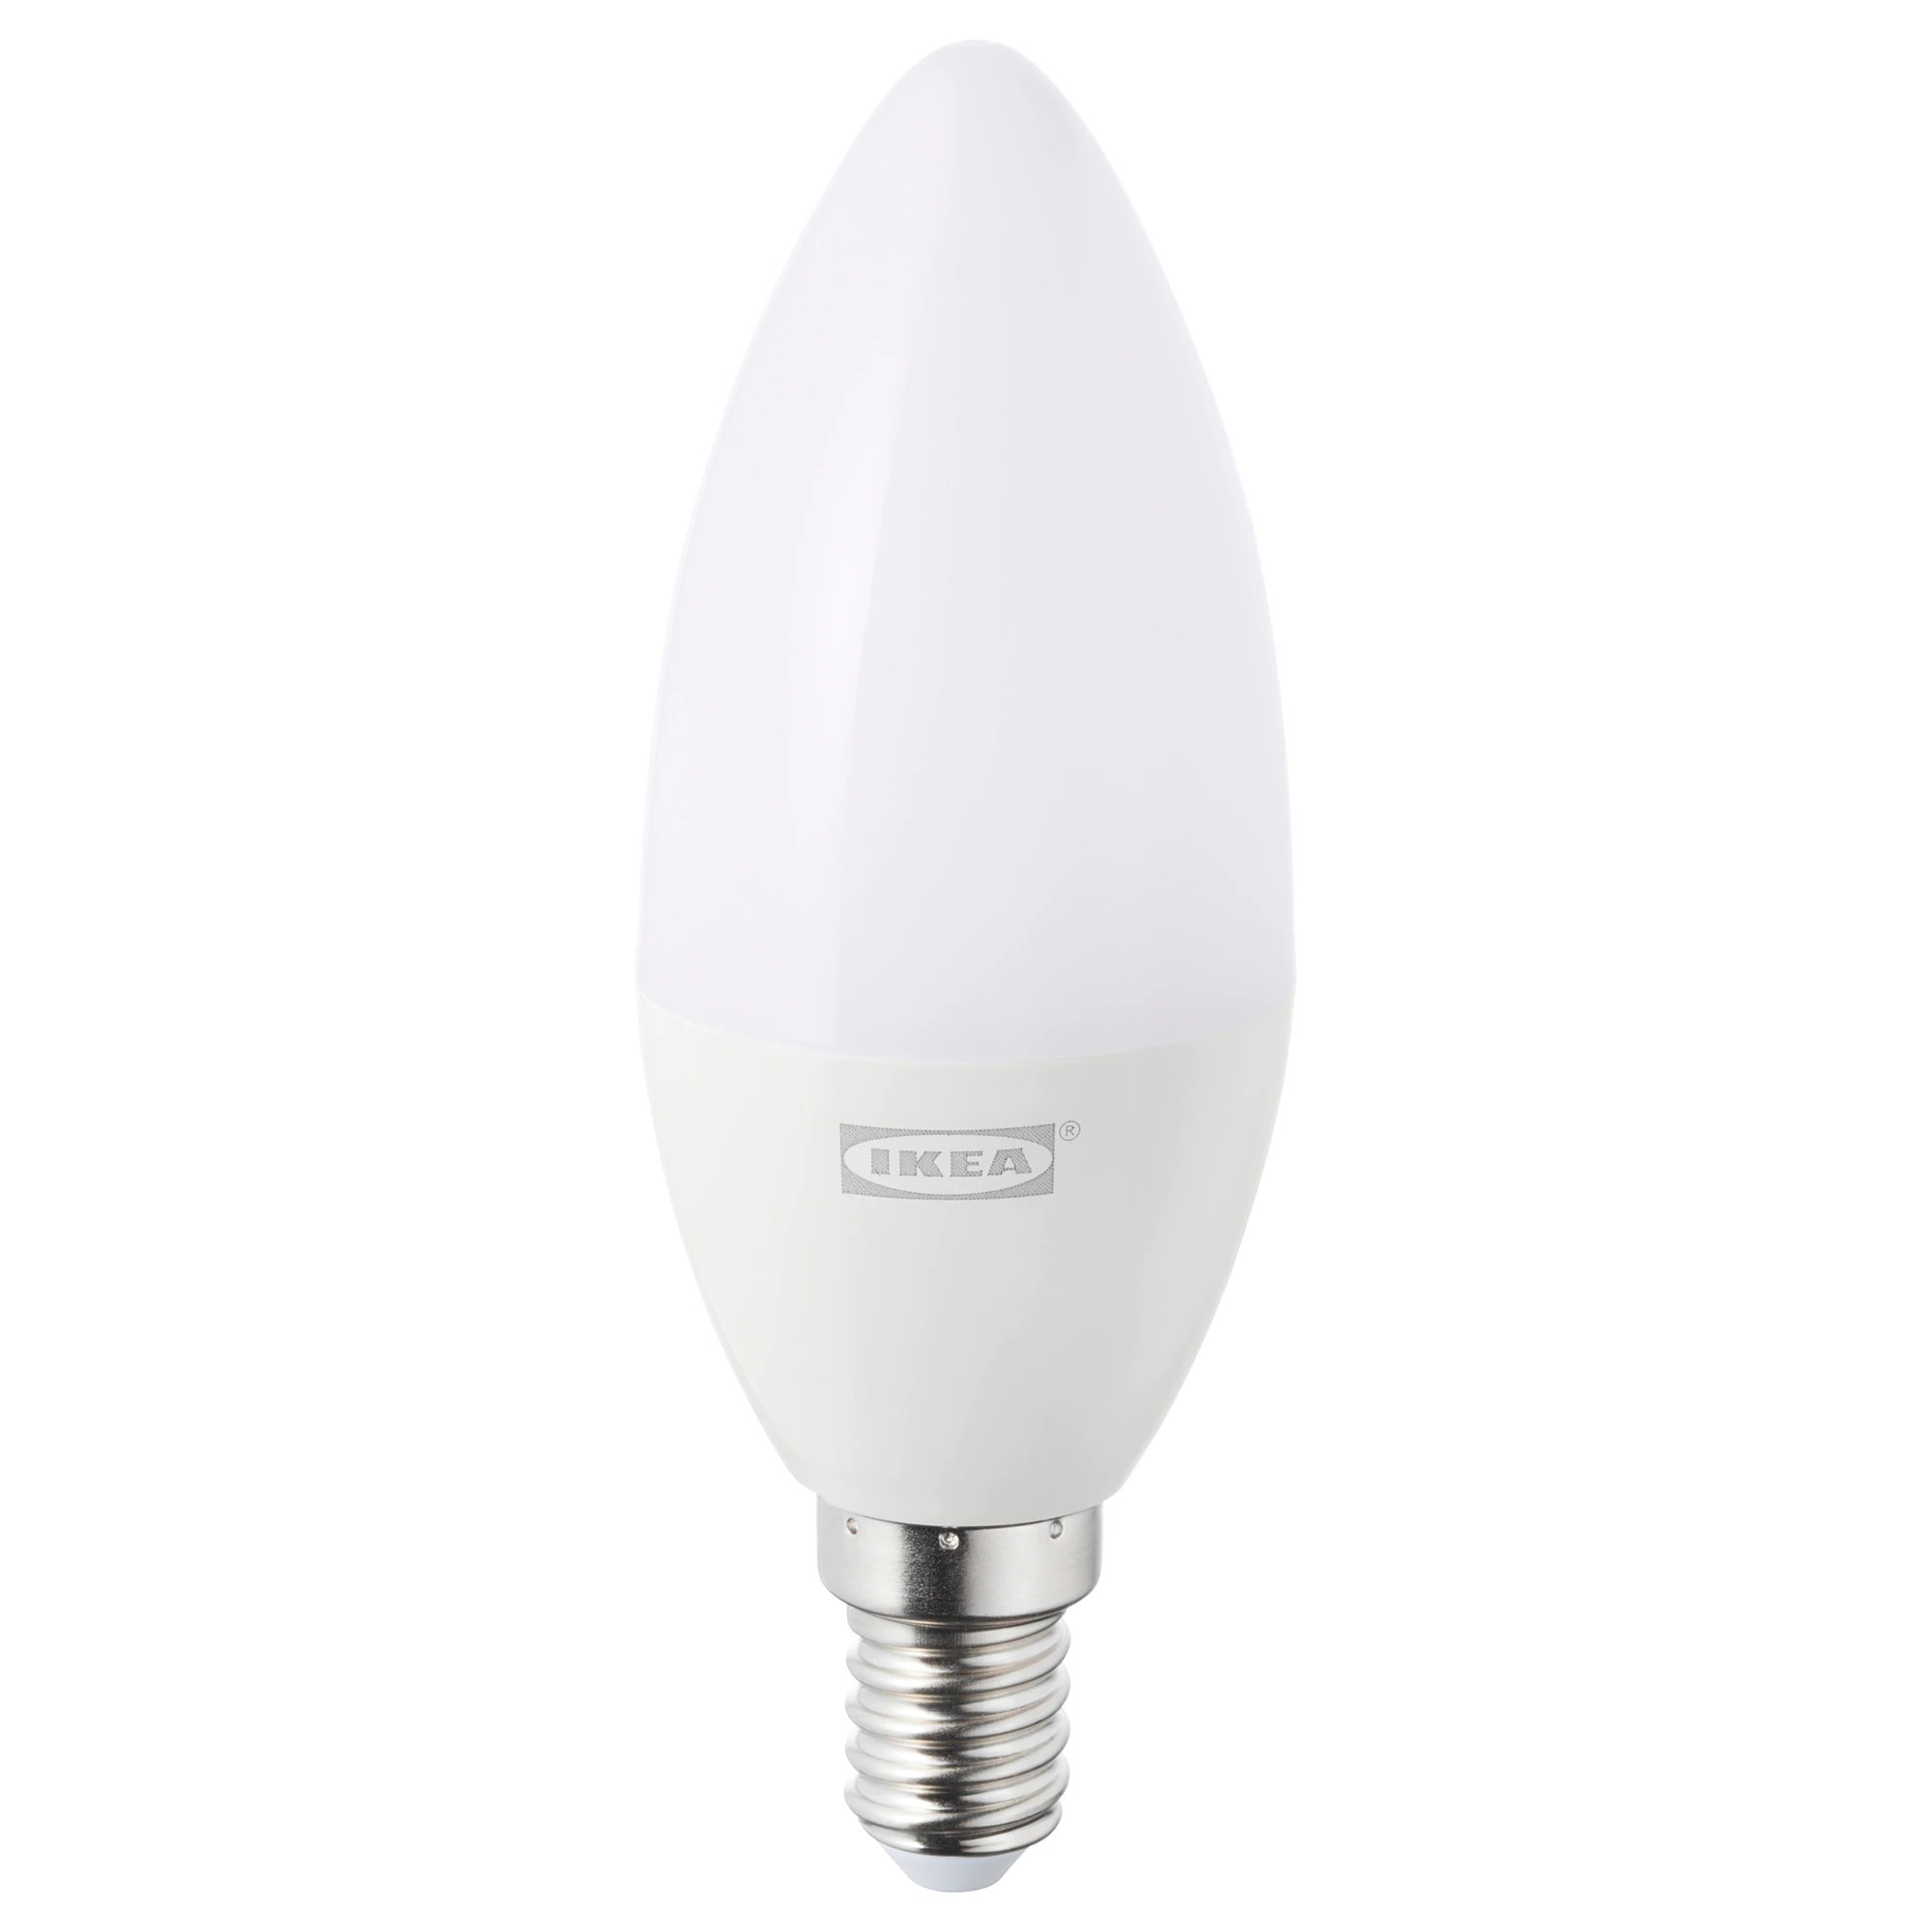 60 E14 Lumen TrÅdfri Led Bulb E14 400 Lumen Wireless Dimmable Warm White Chandelier Opal White